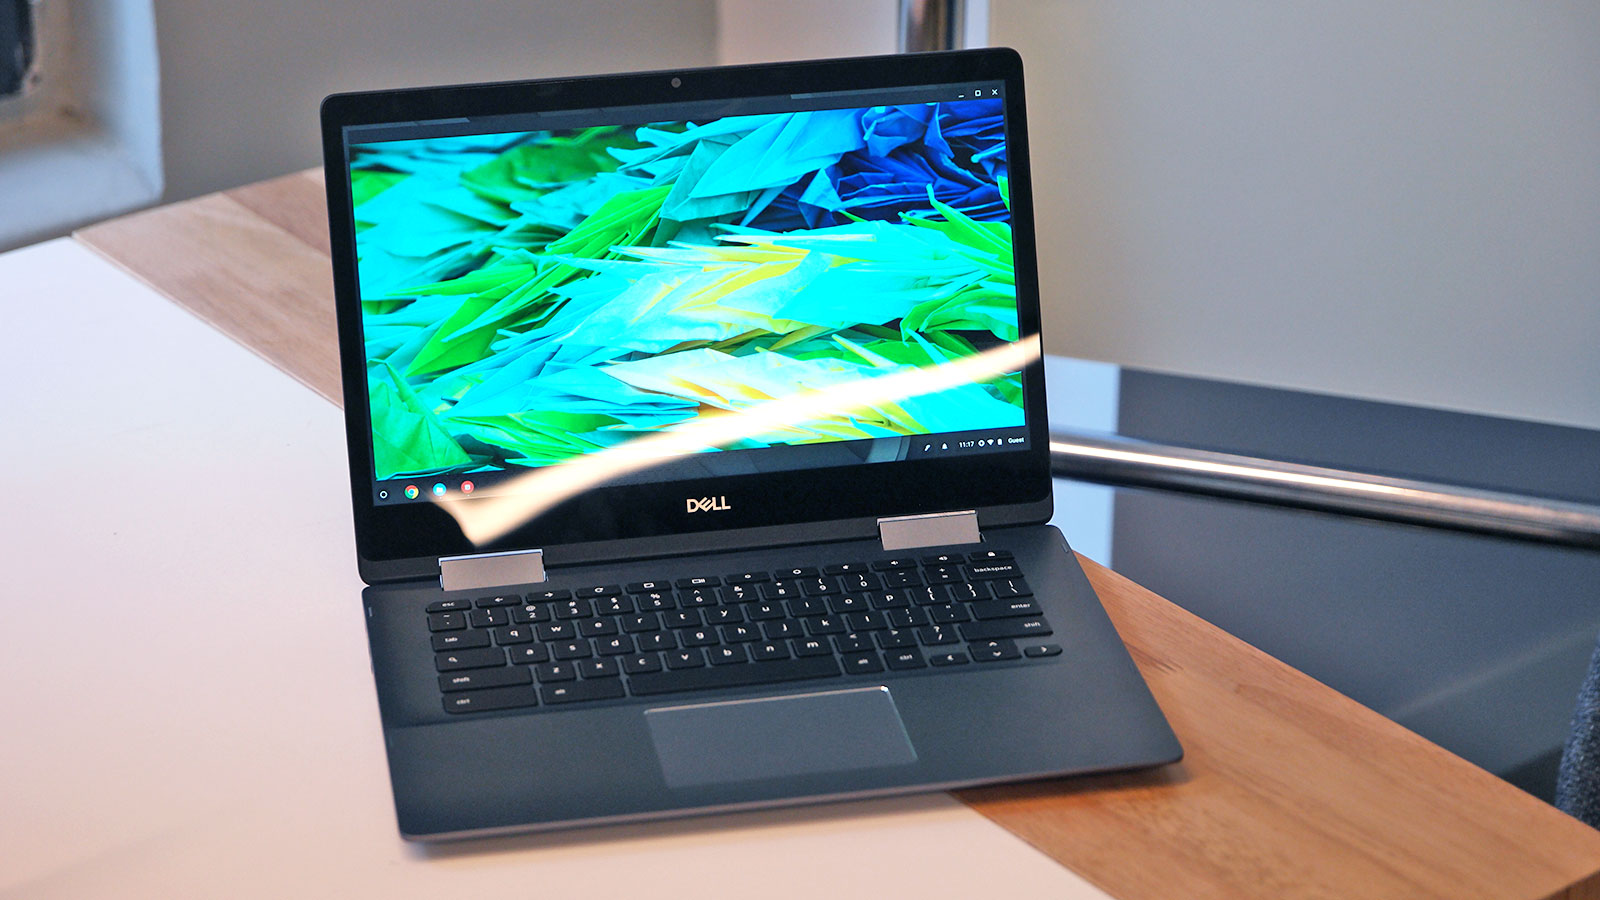 The Inspiron Chromebook 14 is essentially the same as its Windows counterparts minus the fingerprint reader but with Chrome OS and a built-in stylus.